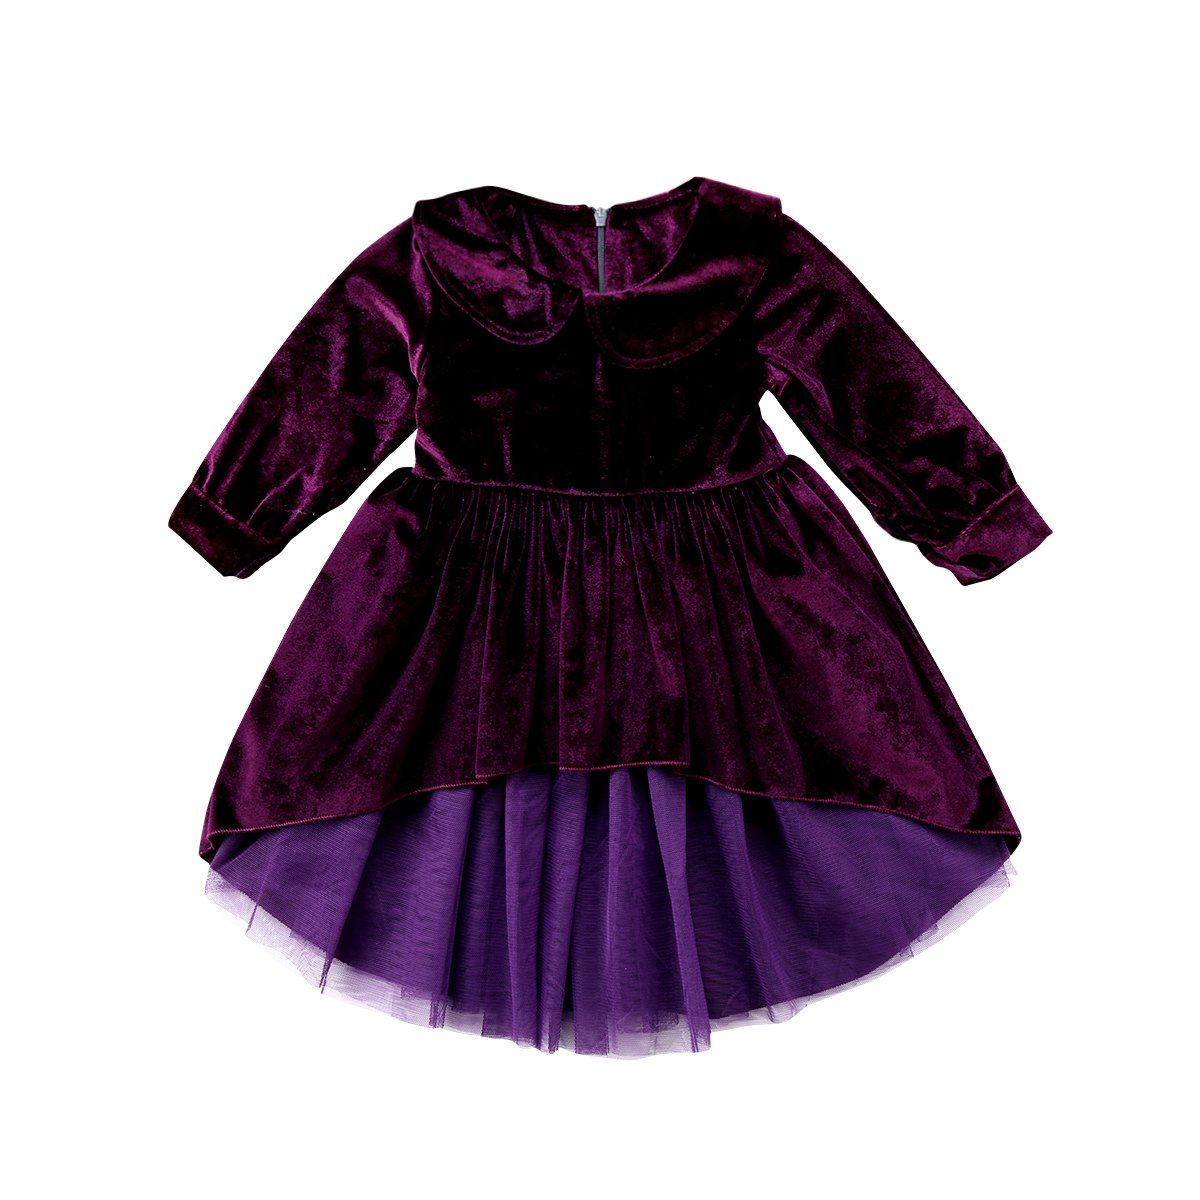 Velvet Princess Party Dress Buy it today from www.presentbaby.com  We sell a wide array of baby clothing, socks, shoes, bottles, blankets and more. For more information visit our website today.  #boy #gender #baby #cute #onesies #cutest #winter #neutral #bottles #newborn #dresses #funny #clothes #girl #shoes